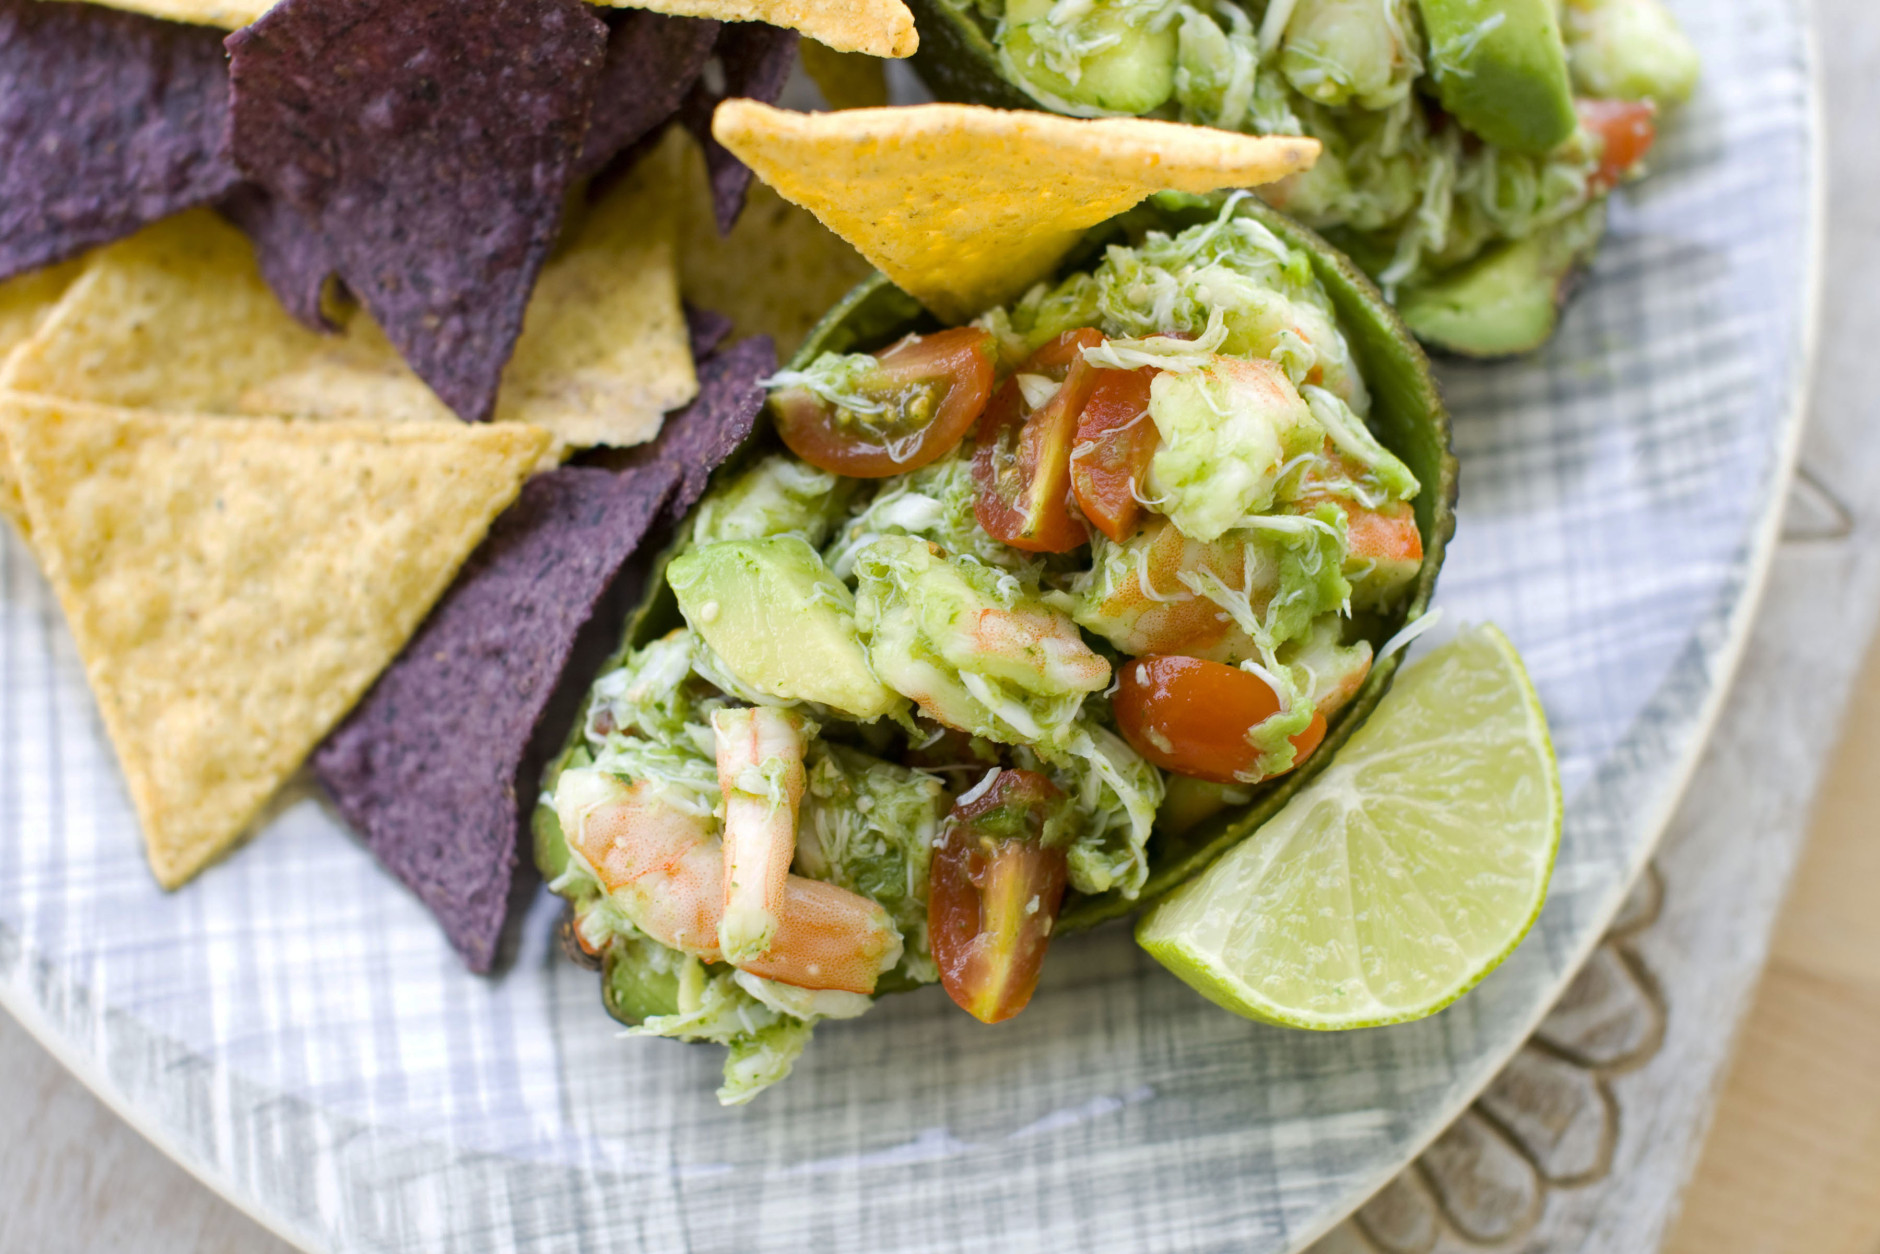 In this image taken on July 16, 2012, chef Elizabeth Karmel's recipe of cooked shrimp and crab in a light, chilled summer cerviche served with tortilla chips is shown in Concord, N.H. (AP Photo/Matthew Mead)